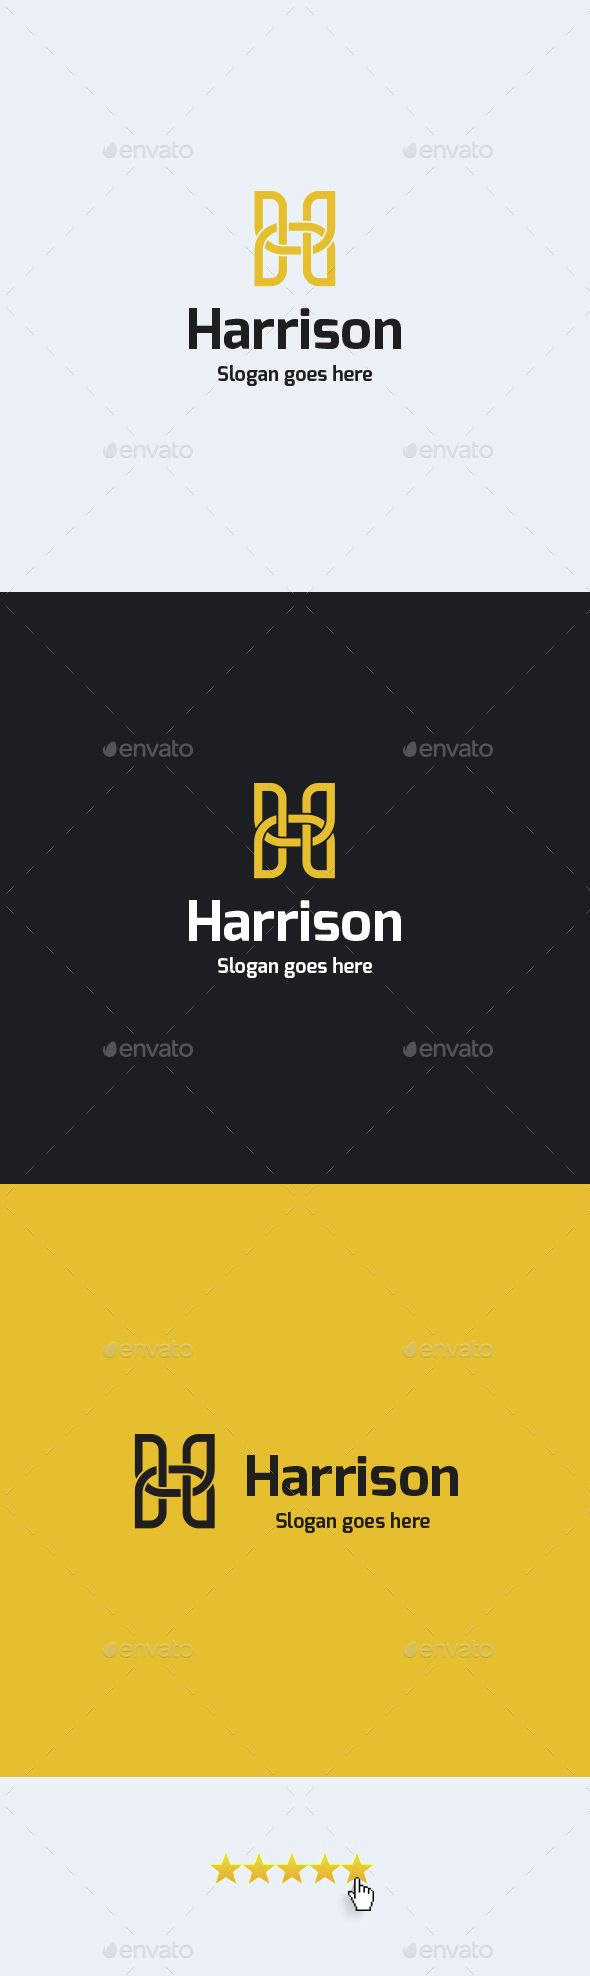 Harrison � Letter H - Logo Design Template Vector #logotype Download it here: http://graphicriver.net/item/harrison-letter-h-logo-template/14806139?s_rank=1554?ref=nexion